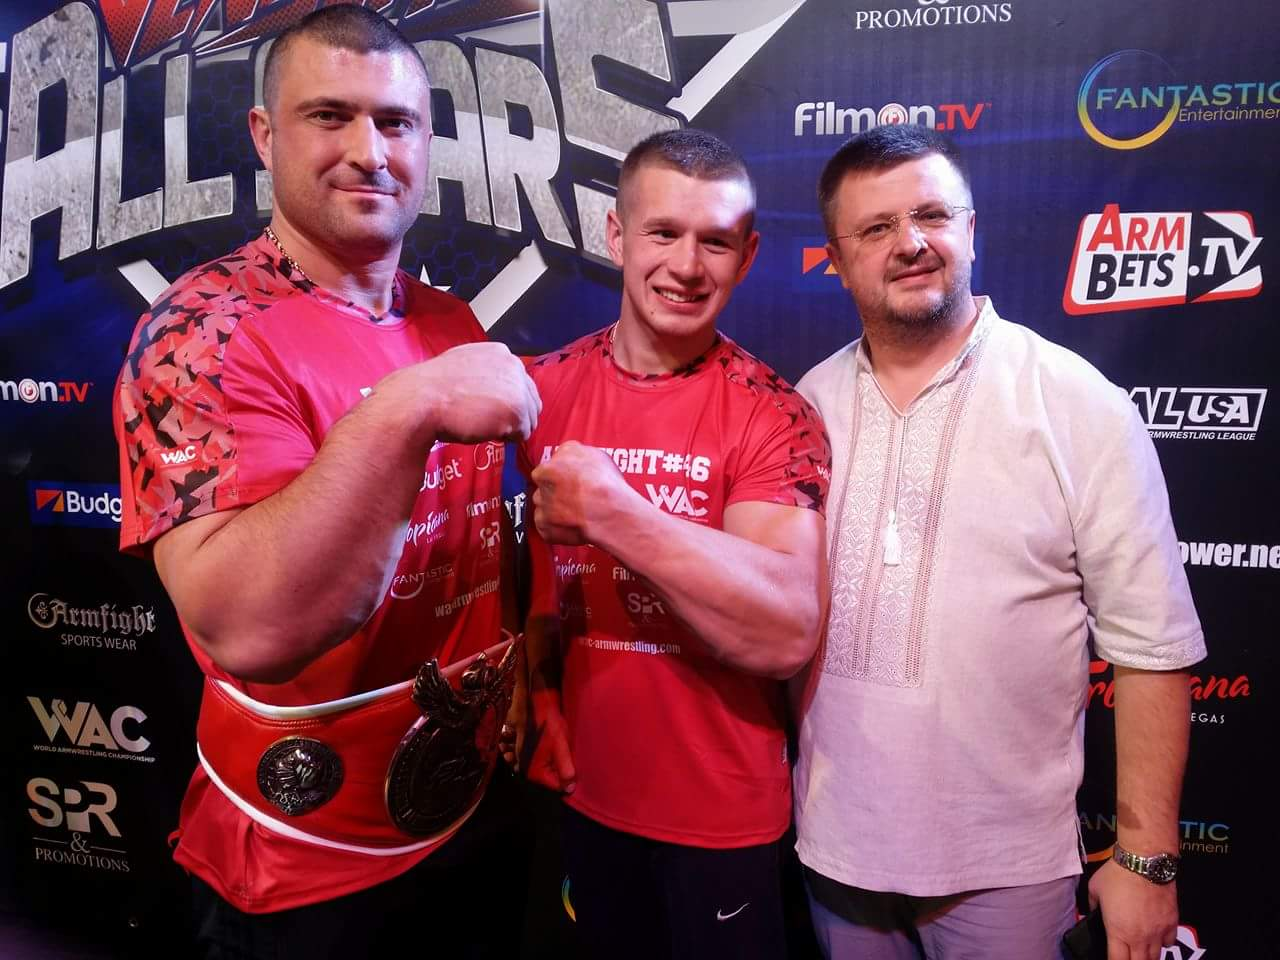 Andrey Pushkar and Oleg Zhokh, Dmitry Trubin and Denis Cyplenkov, ARMFIGHT 46 VENDETTA ALL STARS, LAS VEGAS │ Photo posted by Irina Way in Армрестлинг главная / Armwrestling / Армспорт